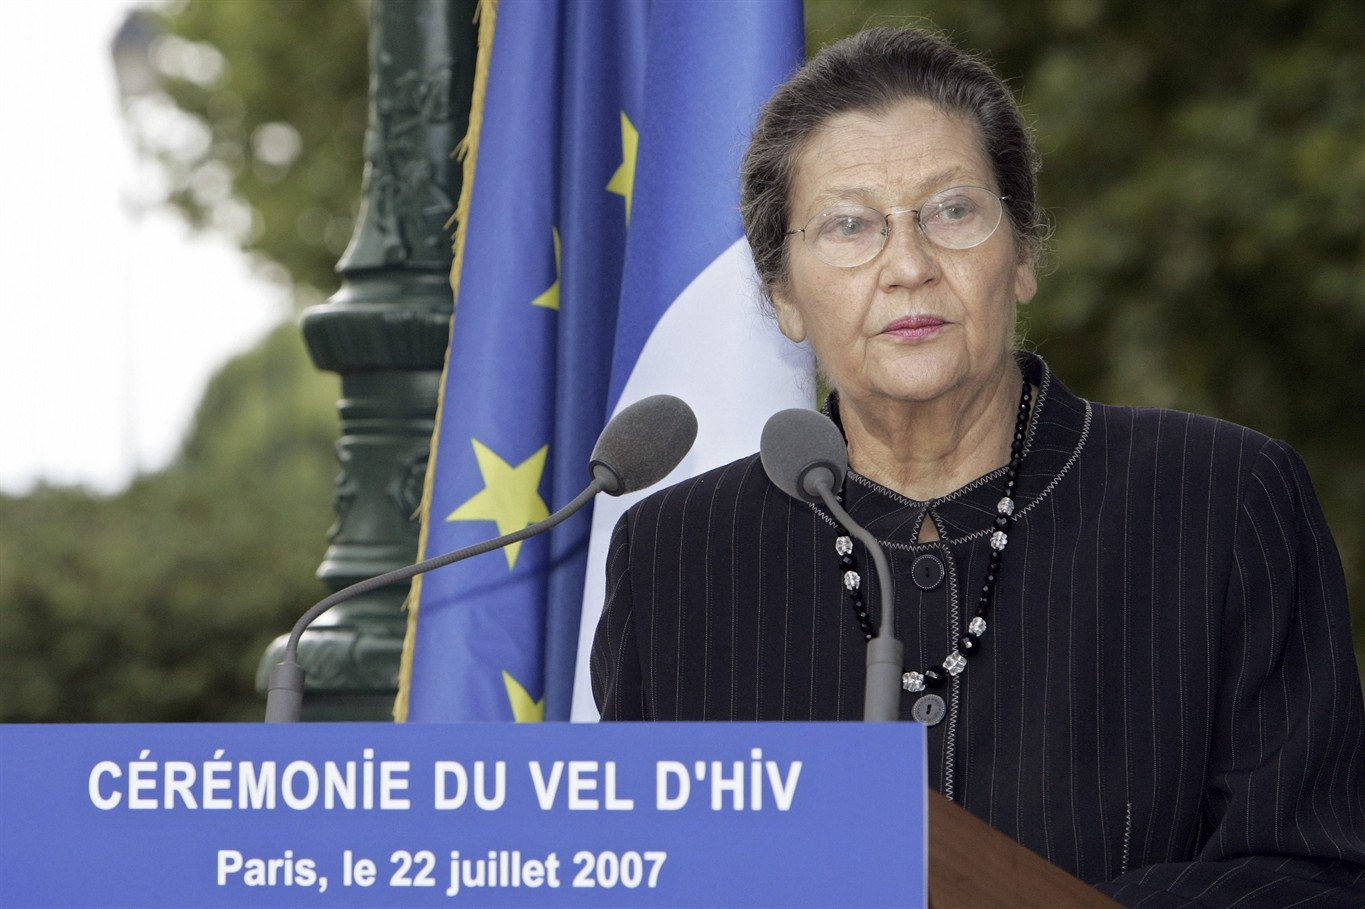 French political icon Simone Veil eulogised as 'best of France'